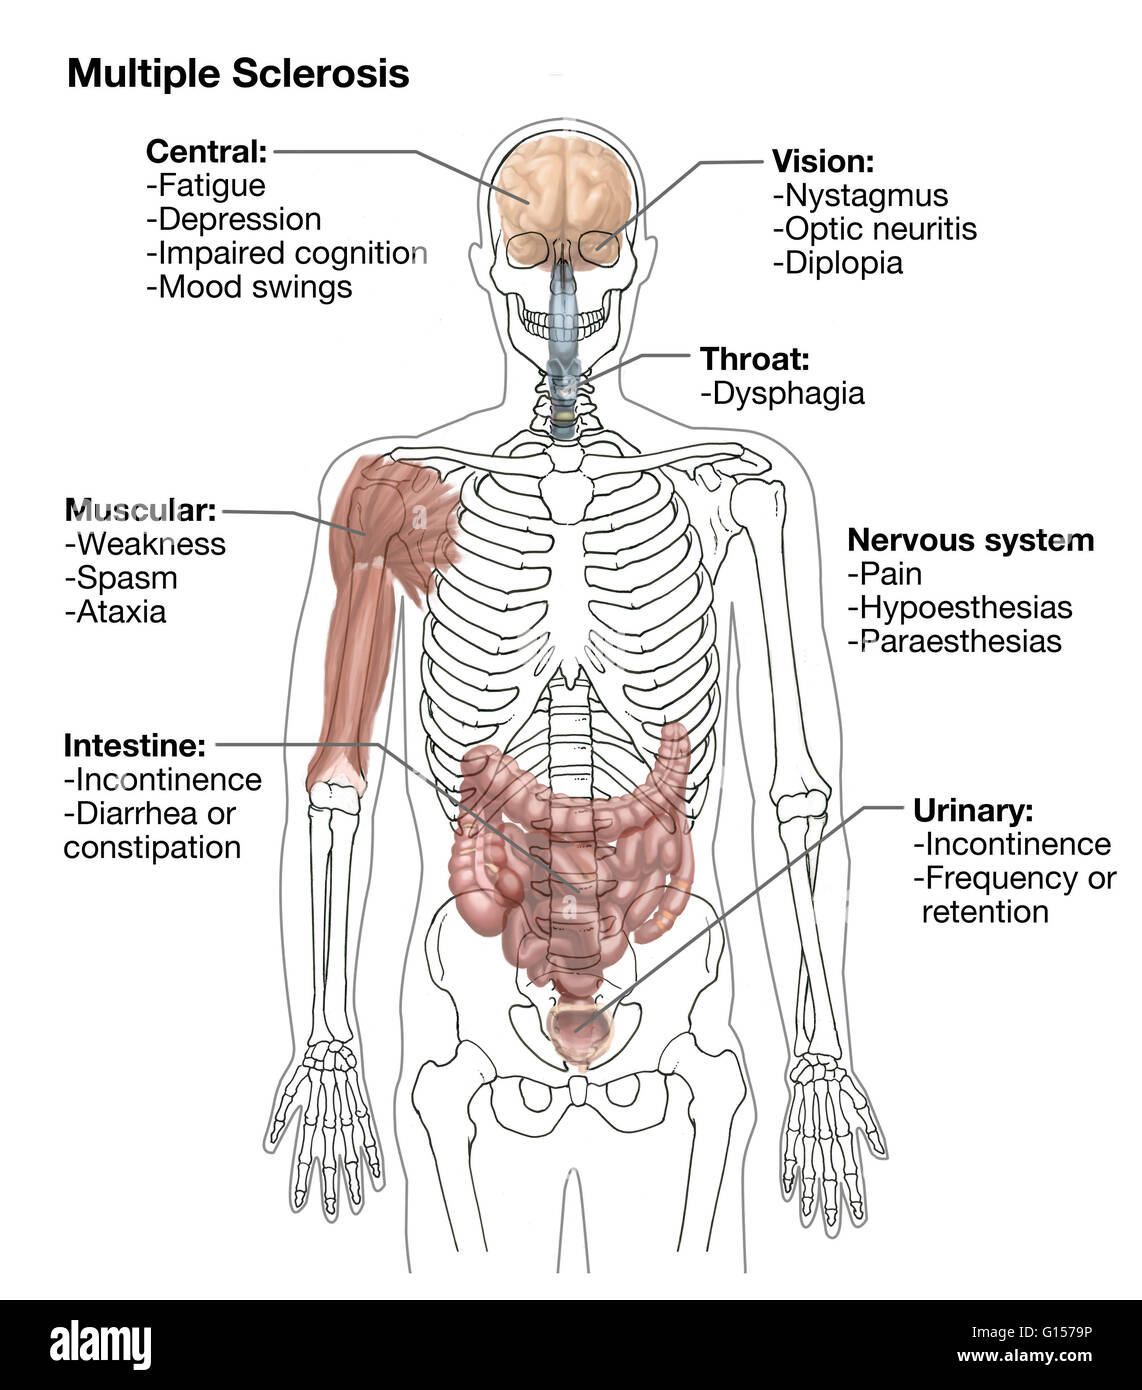 Symptoms Of Multiple Sclerosis Diagram - Enthusiast Wiring Diagrams •